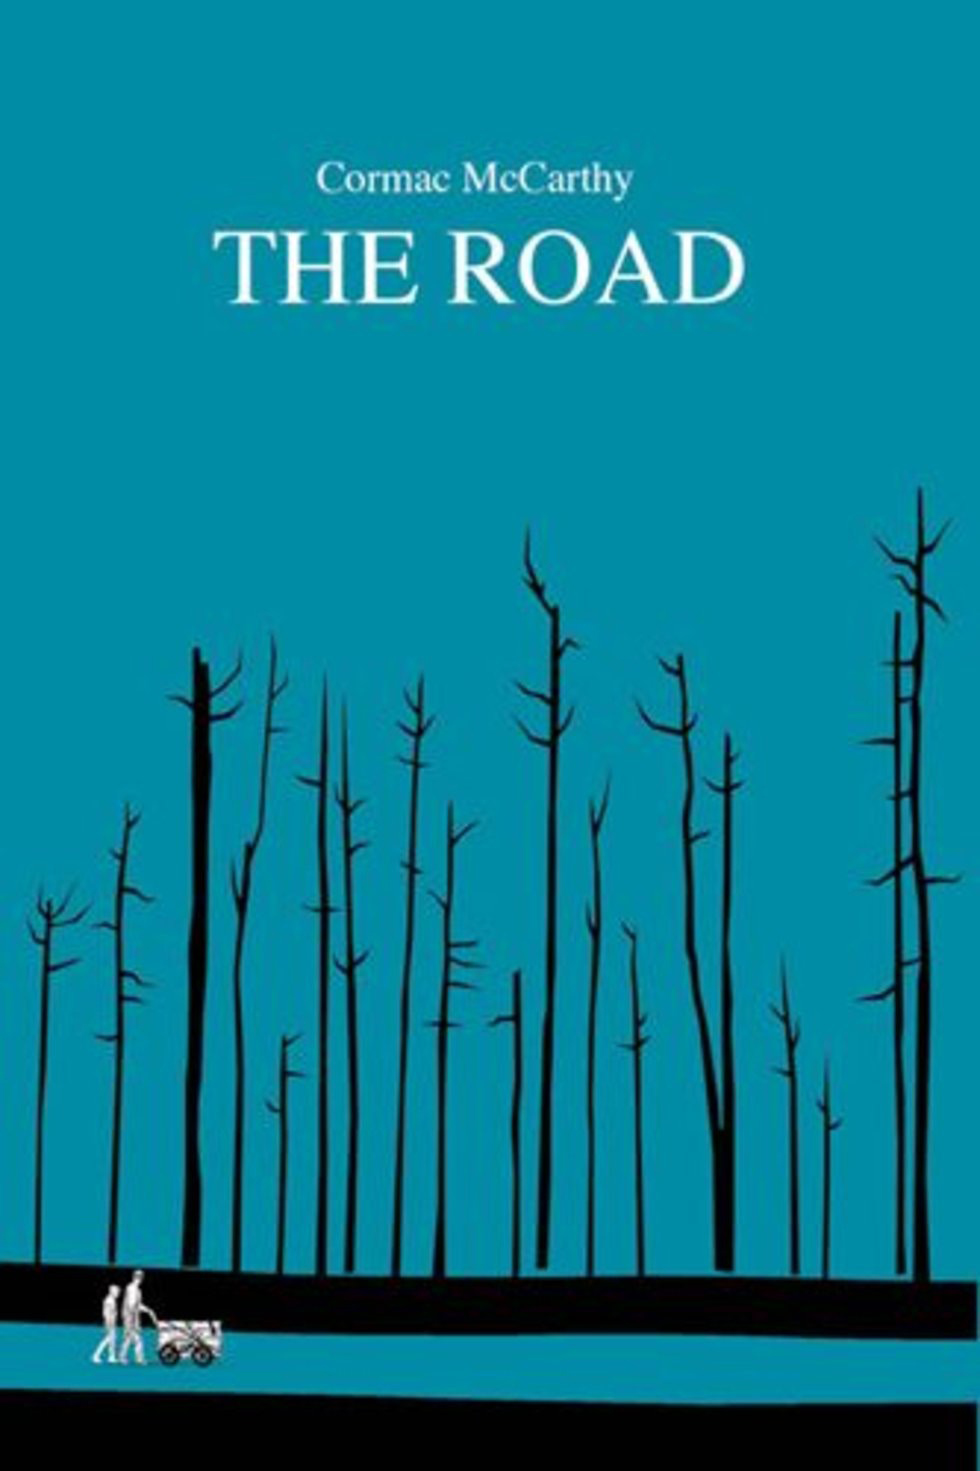 23 Book Covers Show What Goes into Best-Seller Design – The Road